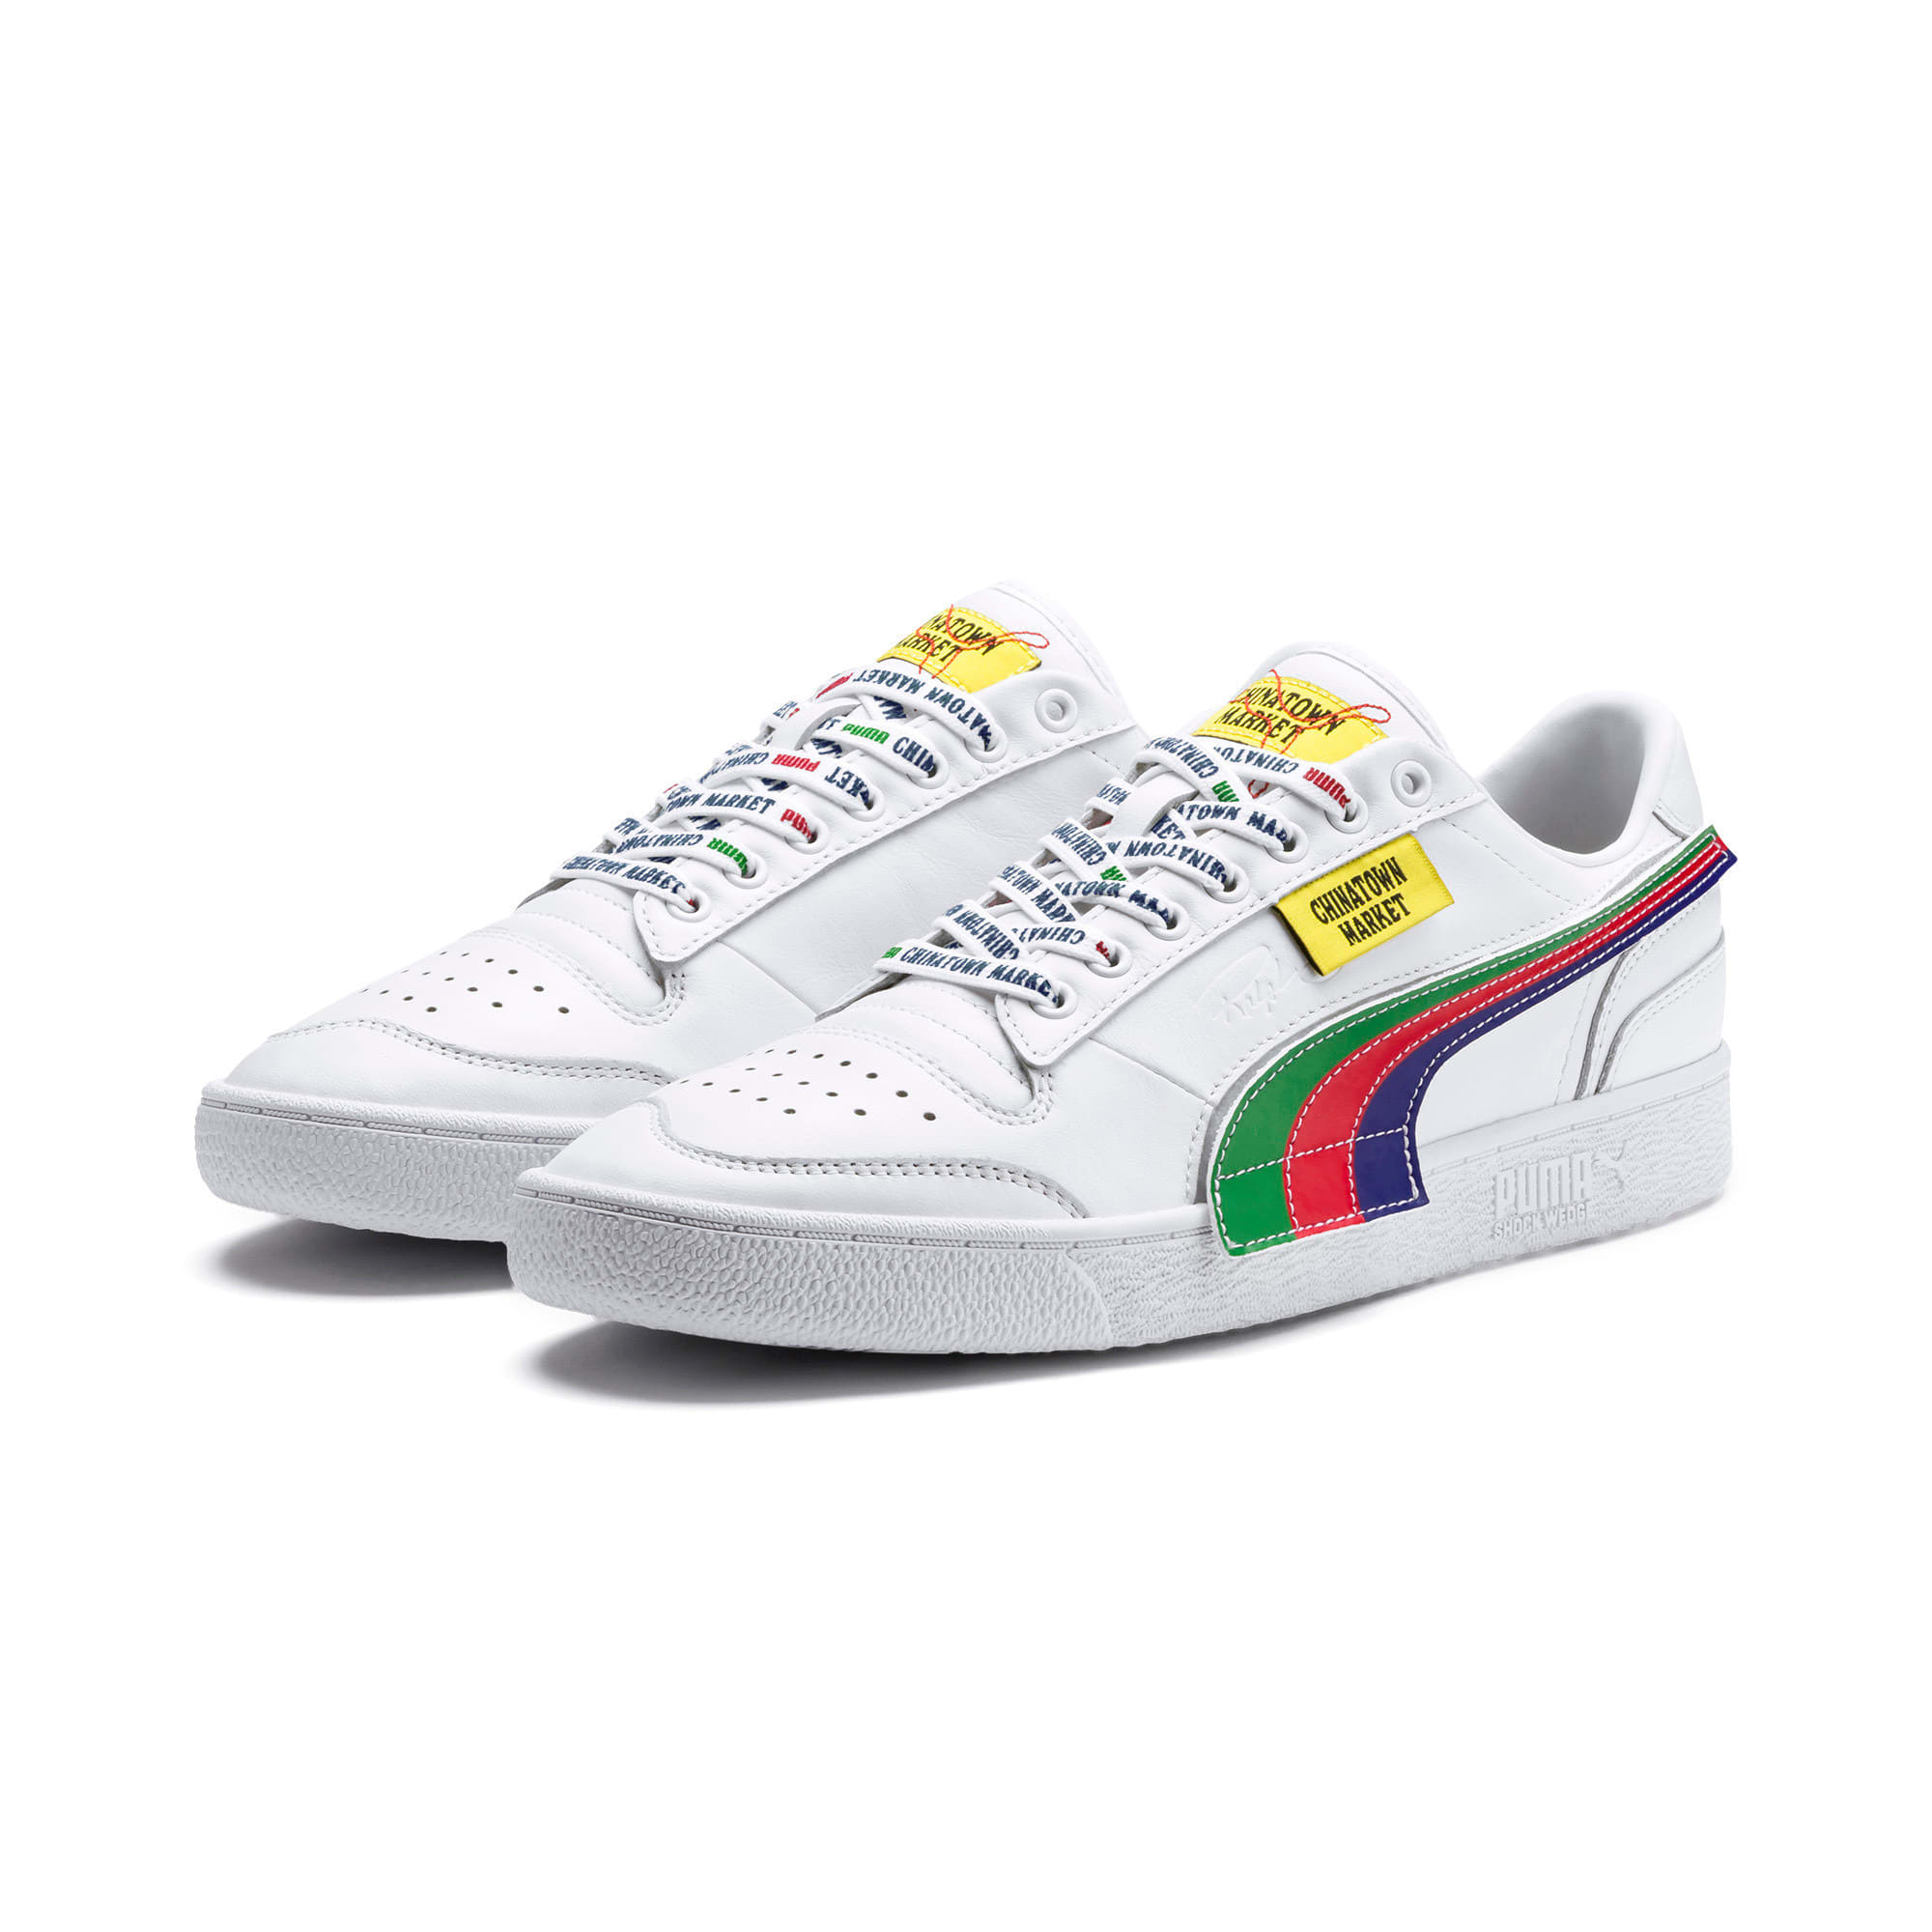 Thumbnail 10 of PUMA x CHINATOWN MARKET Ralph Sampson Lo Sneakers, Puma White, medium